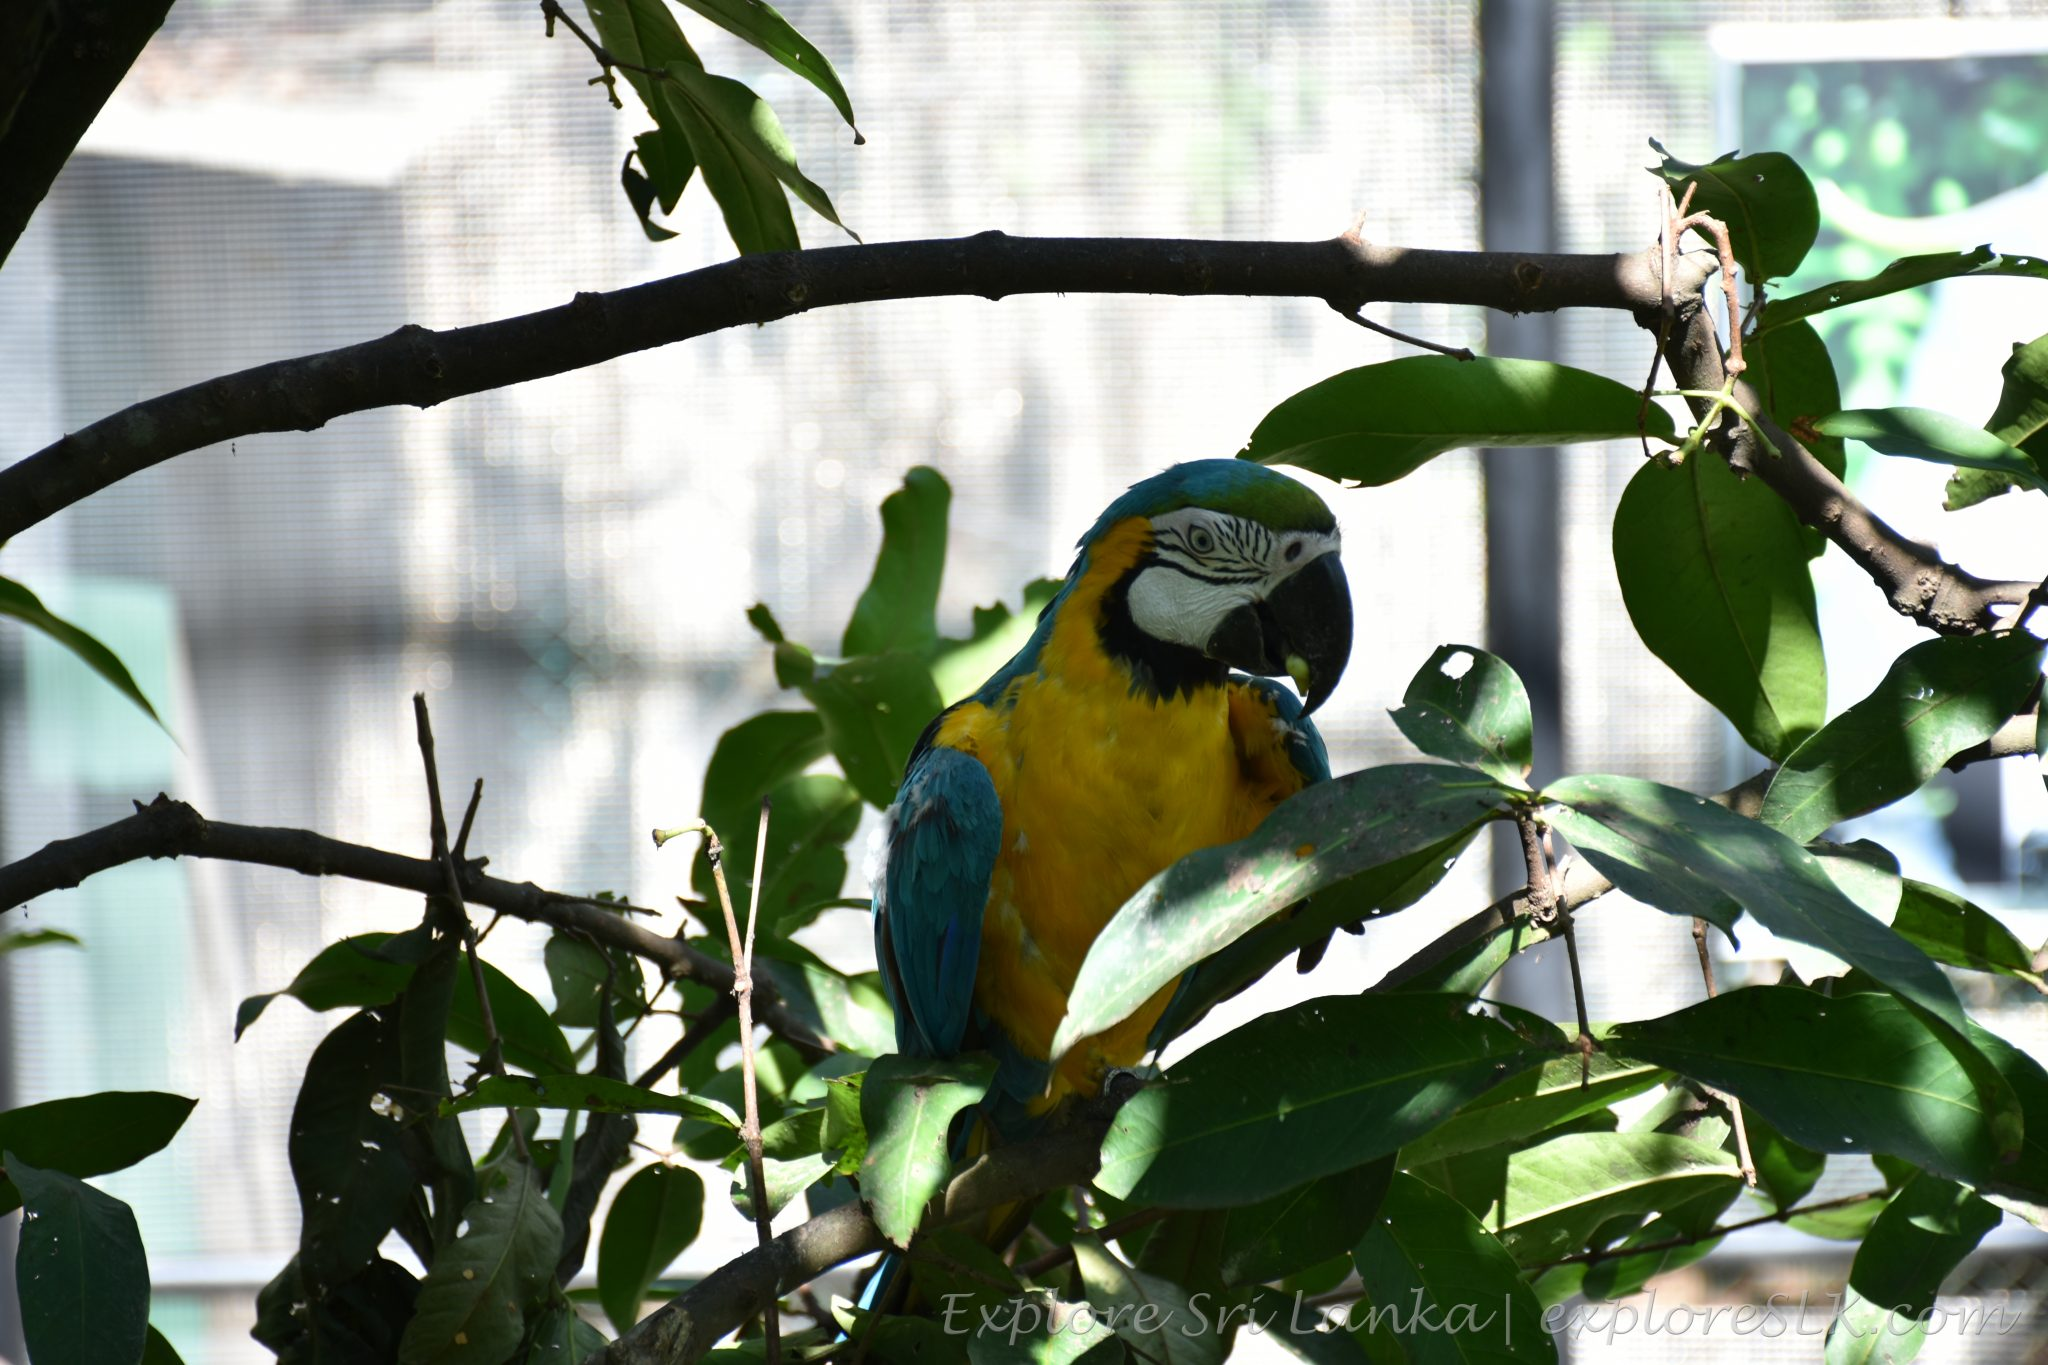 A macaw on tree